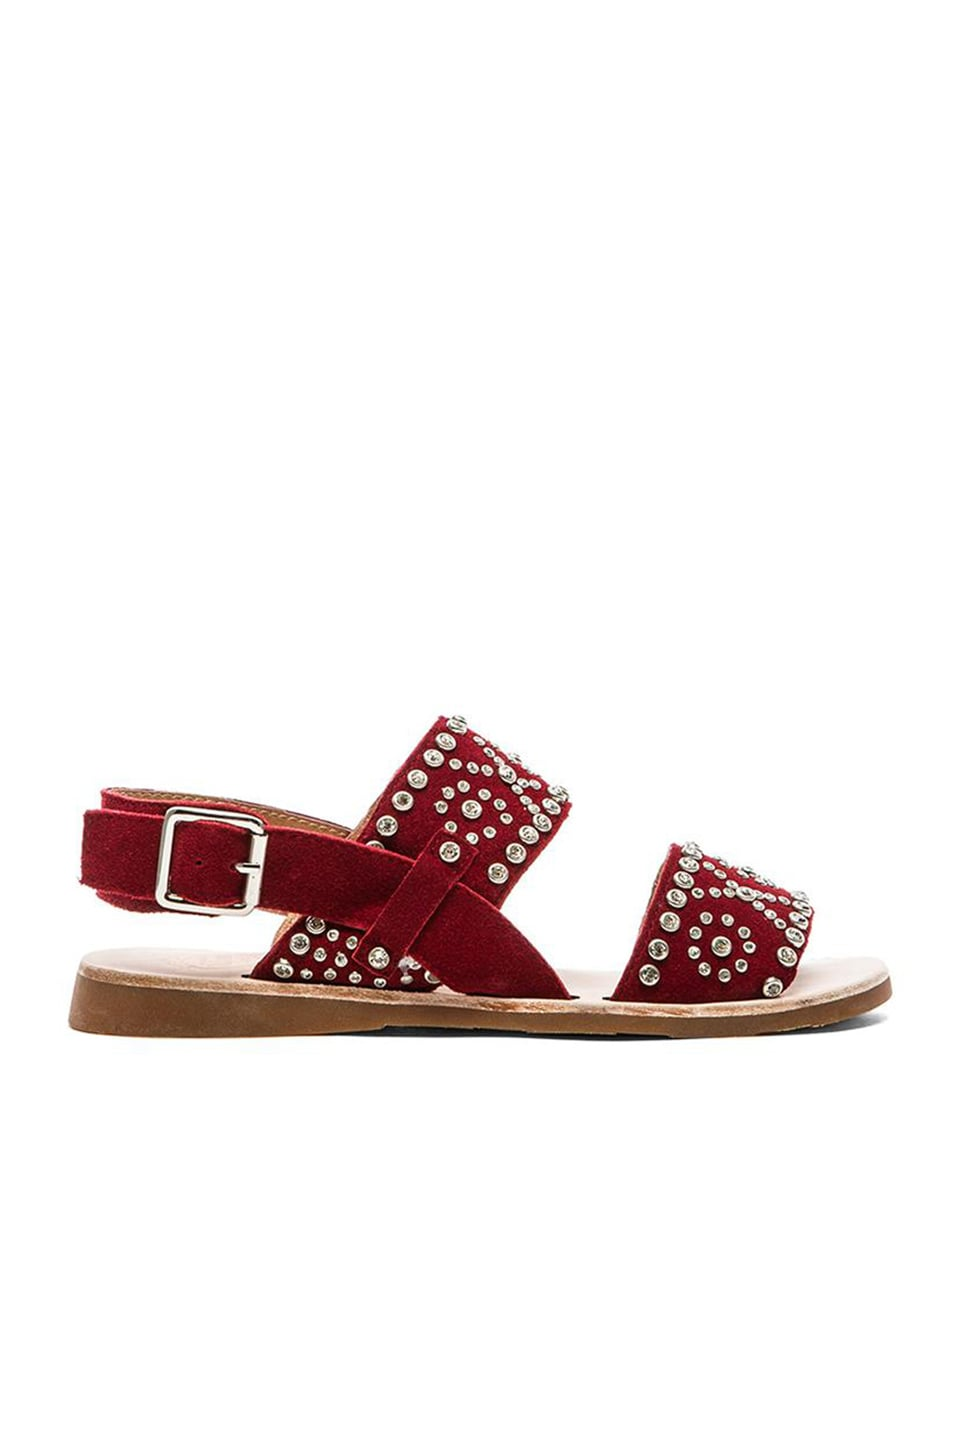 Jeffrey Campbell Patras Xo Sandal in Red Suede